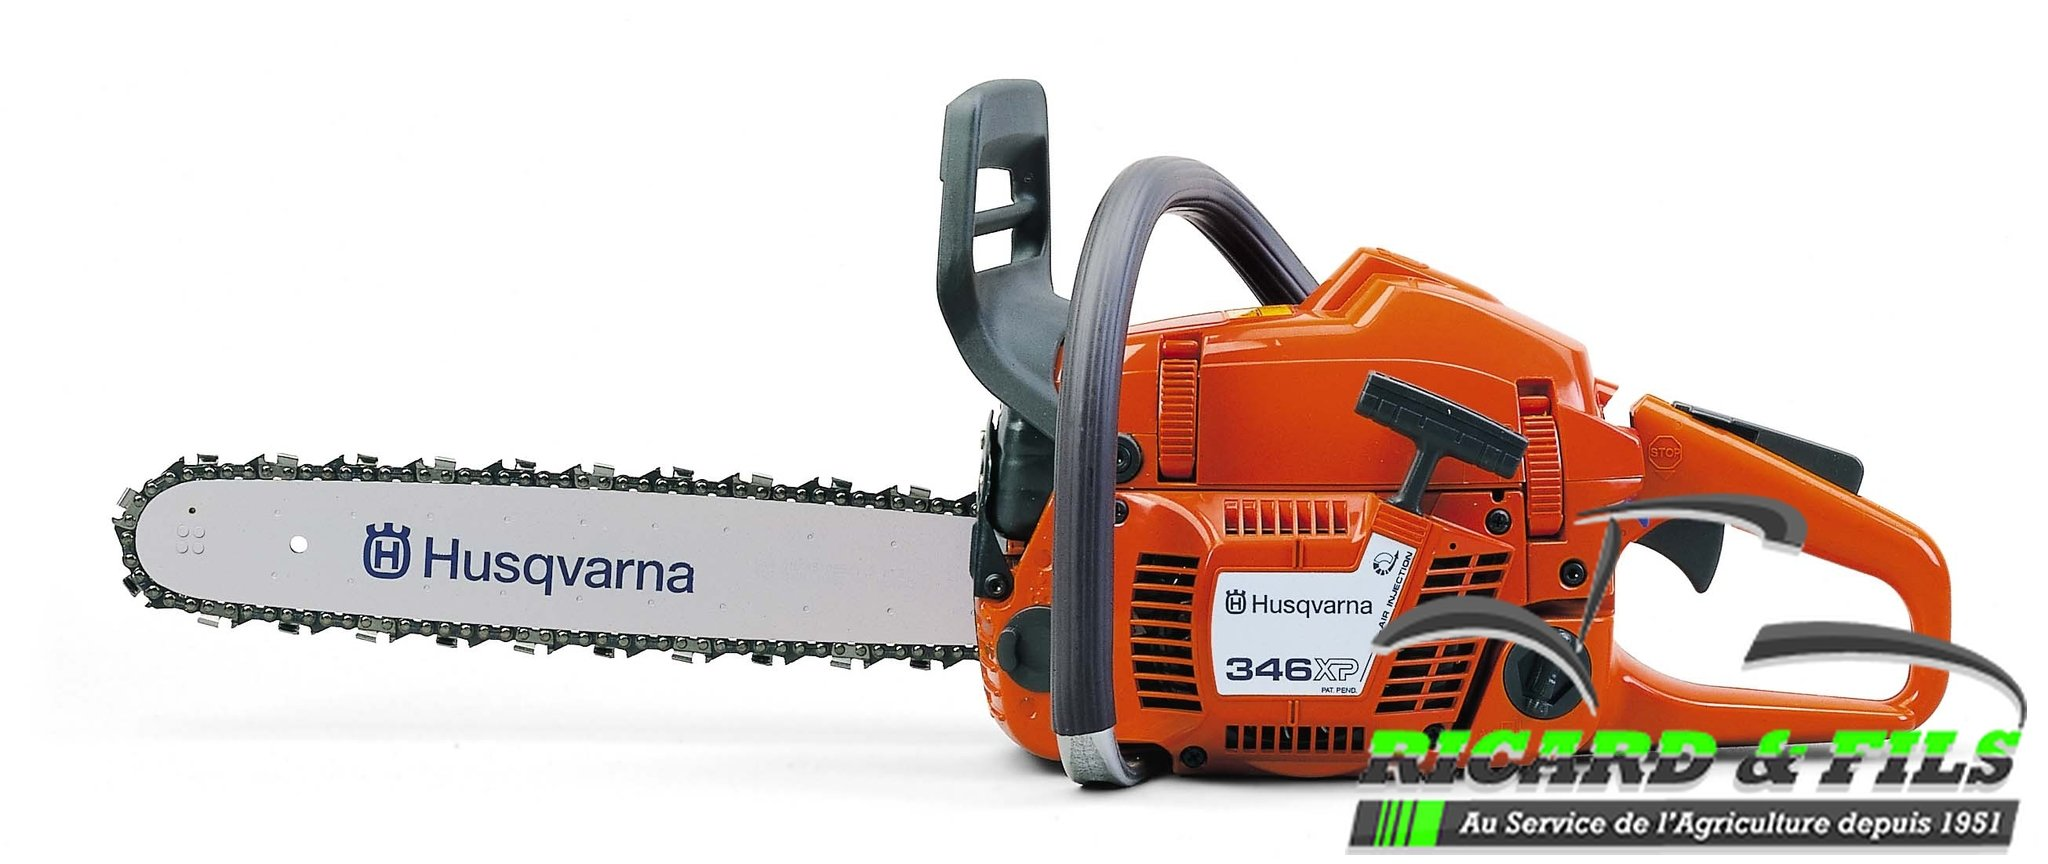 Husqvarna 346XP: Outdoor Power Equipment | eBay